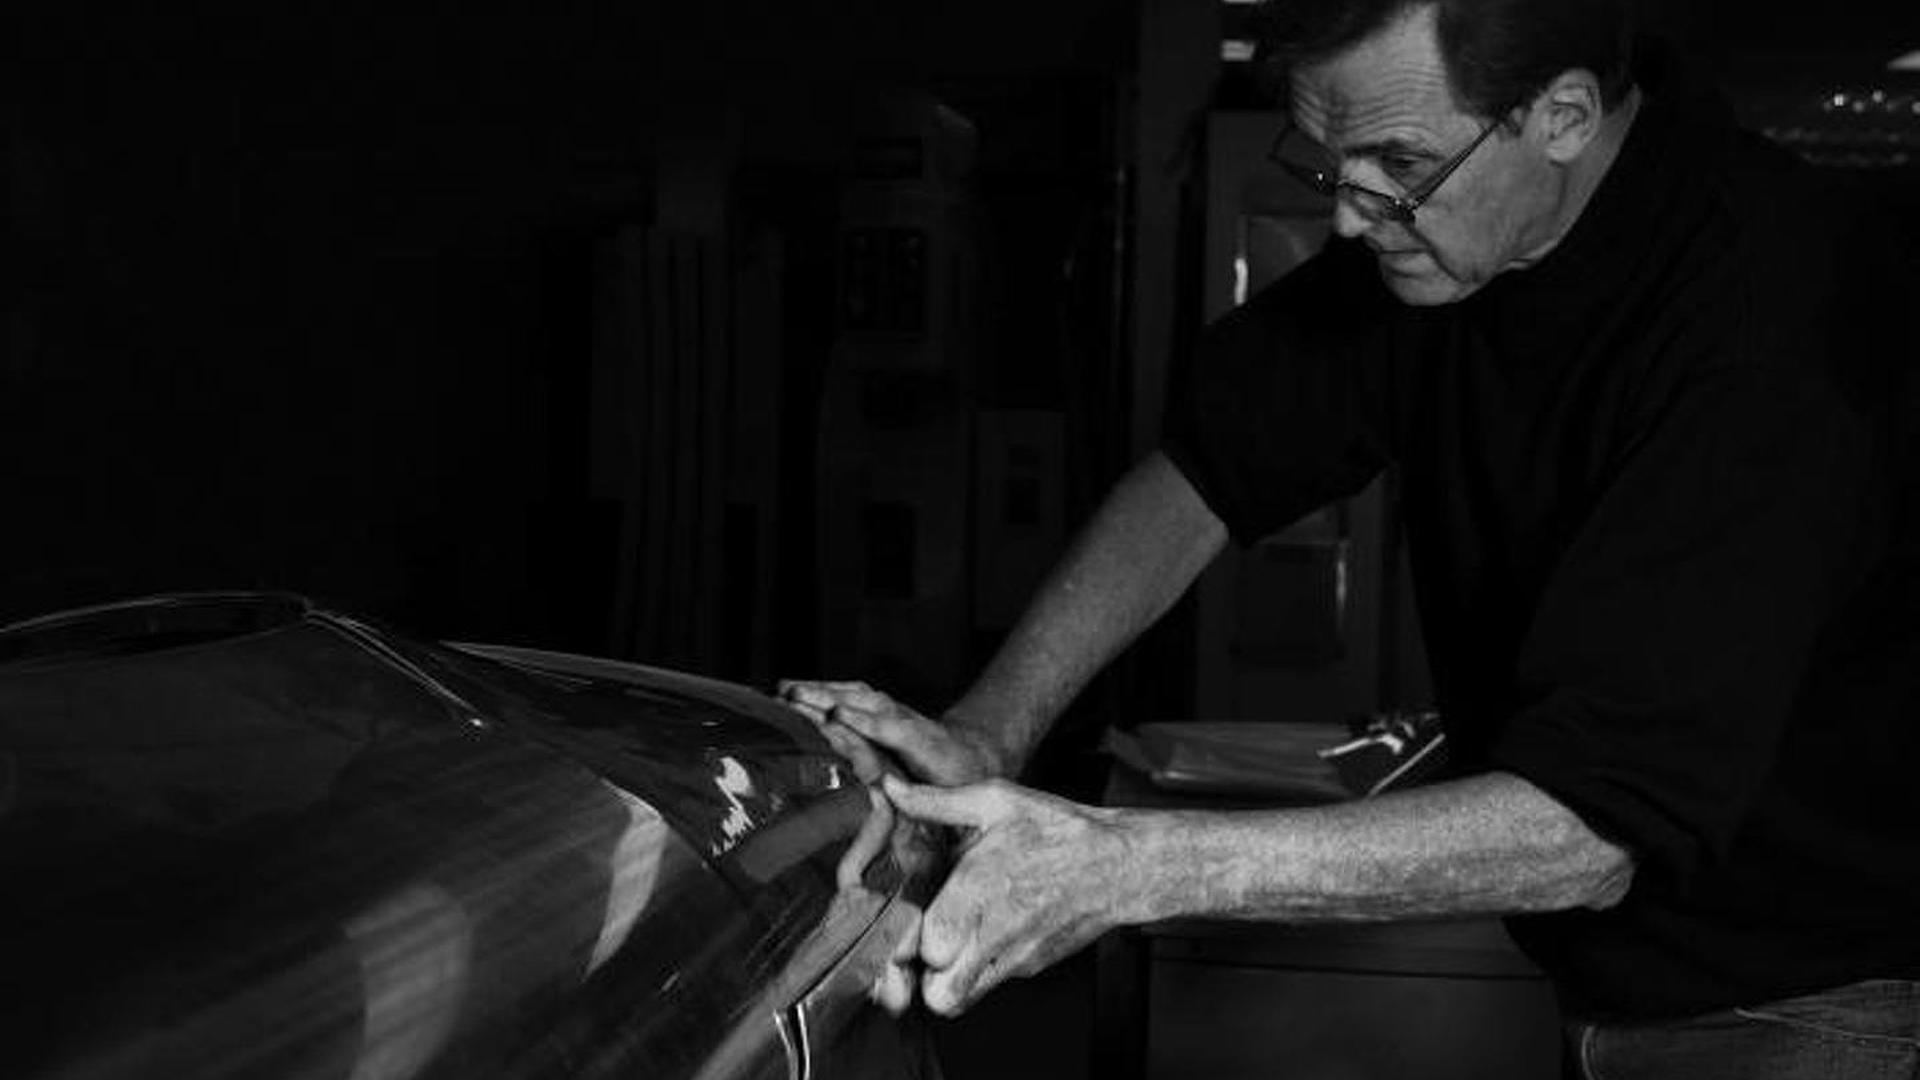 Newly established UK-based David Brown Automotive announces 'Project Judi' luxury sports car